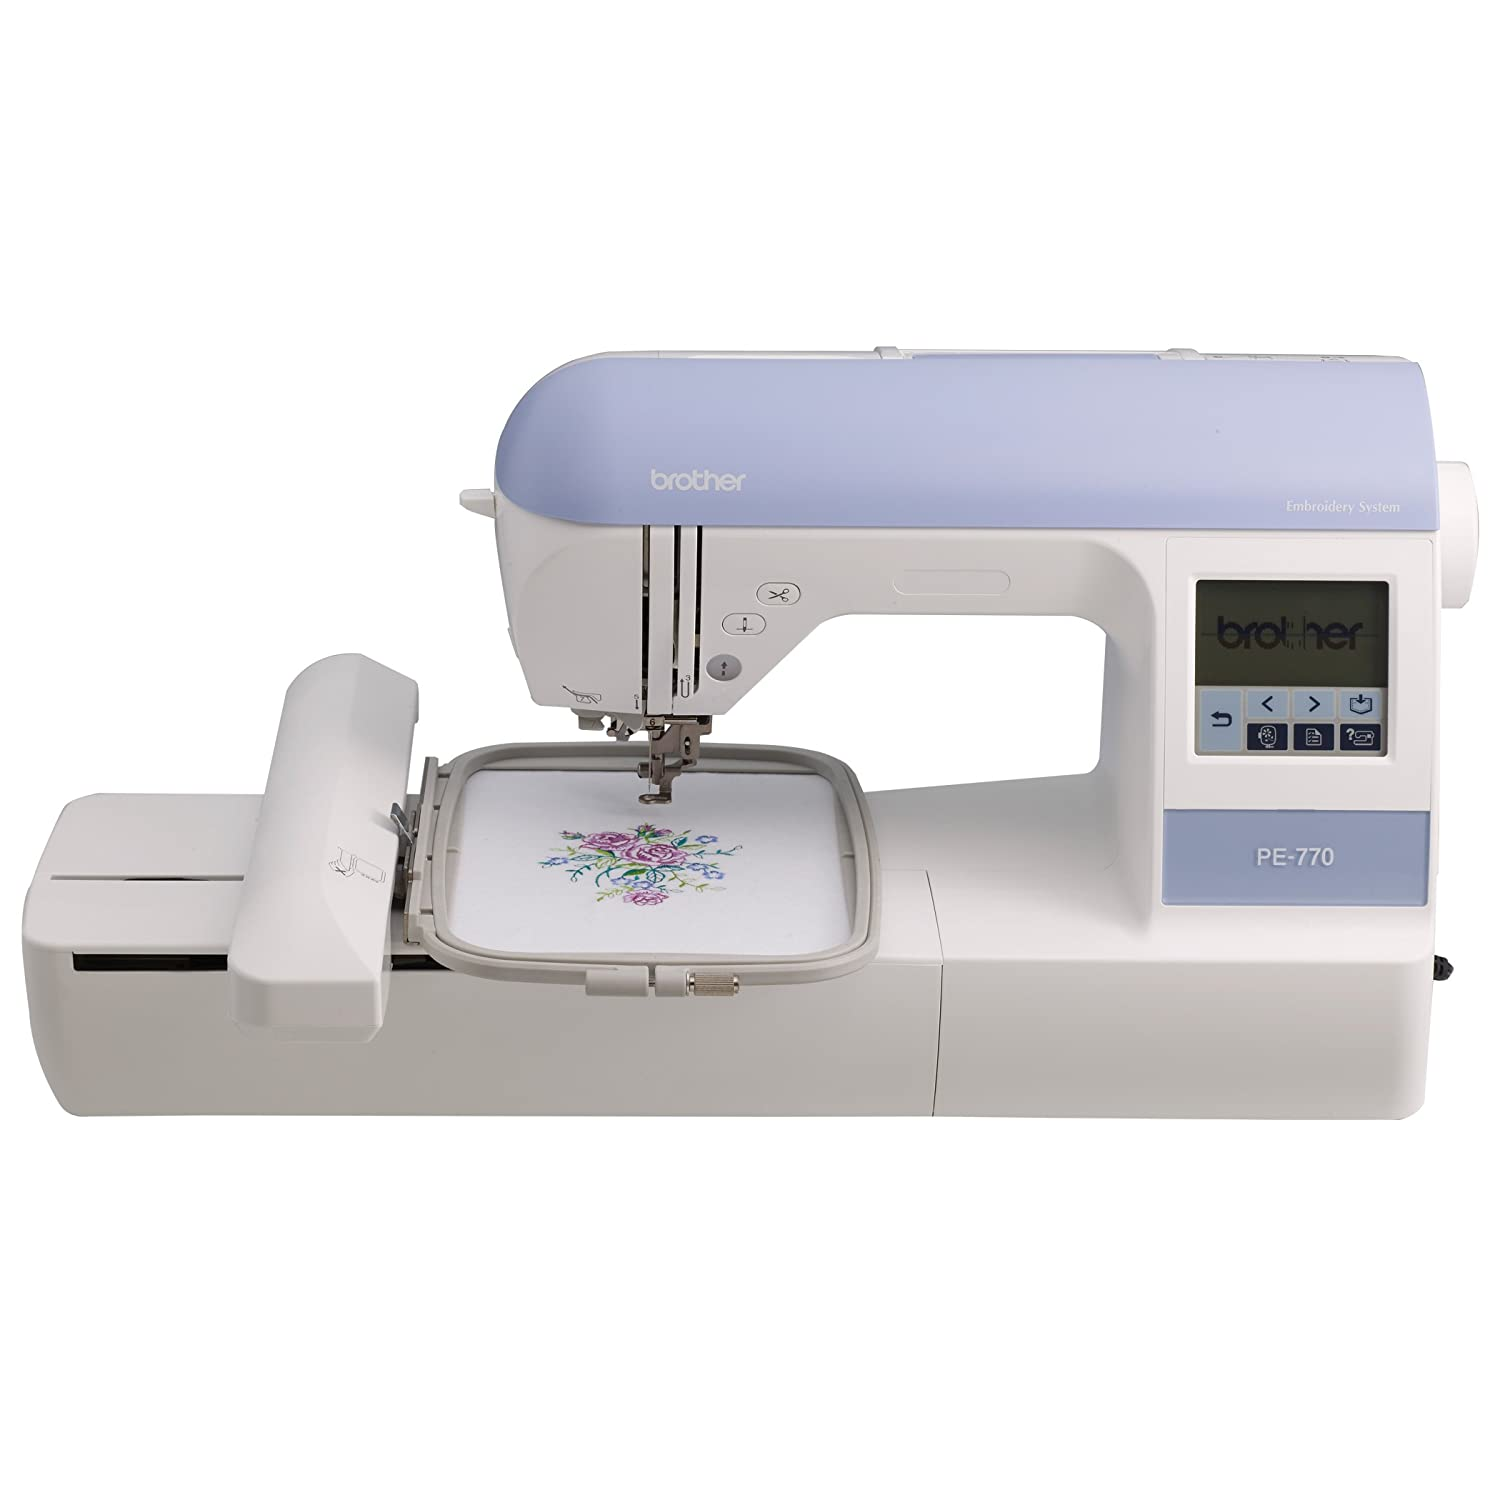 Brother PE525 – The Best Home Embroidery Machine